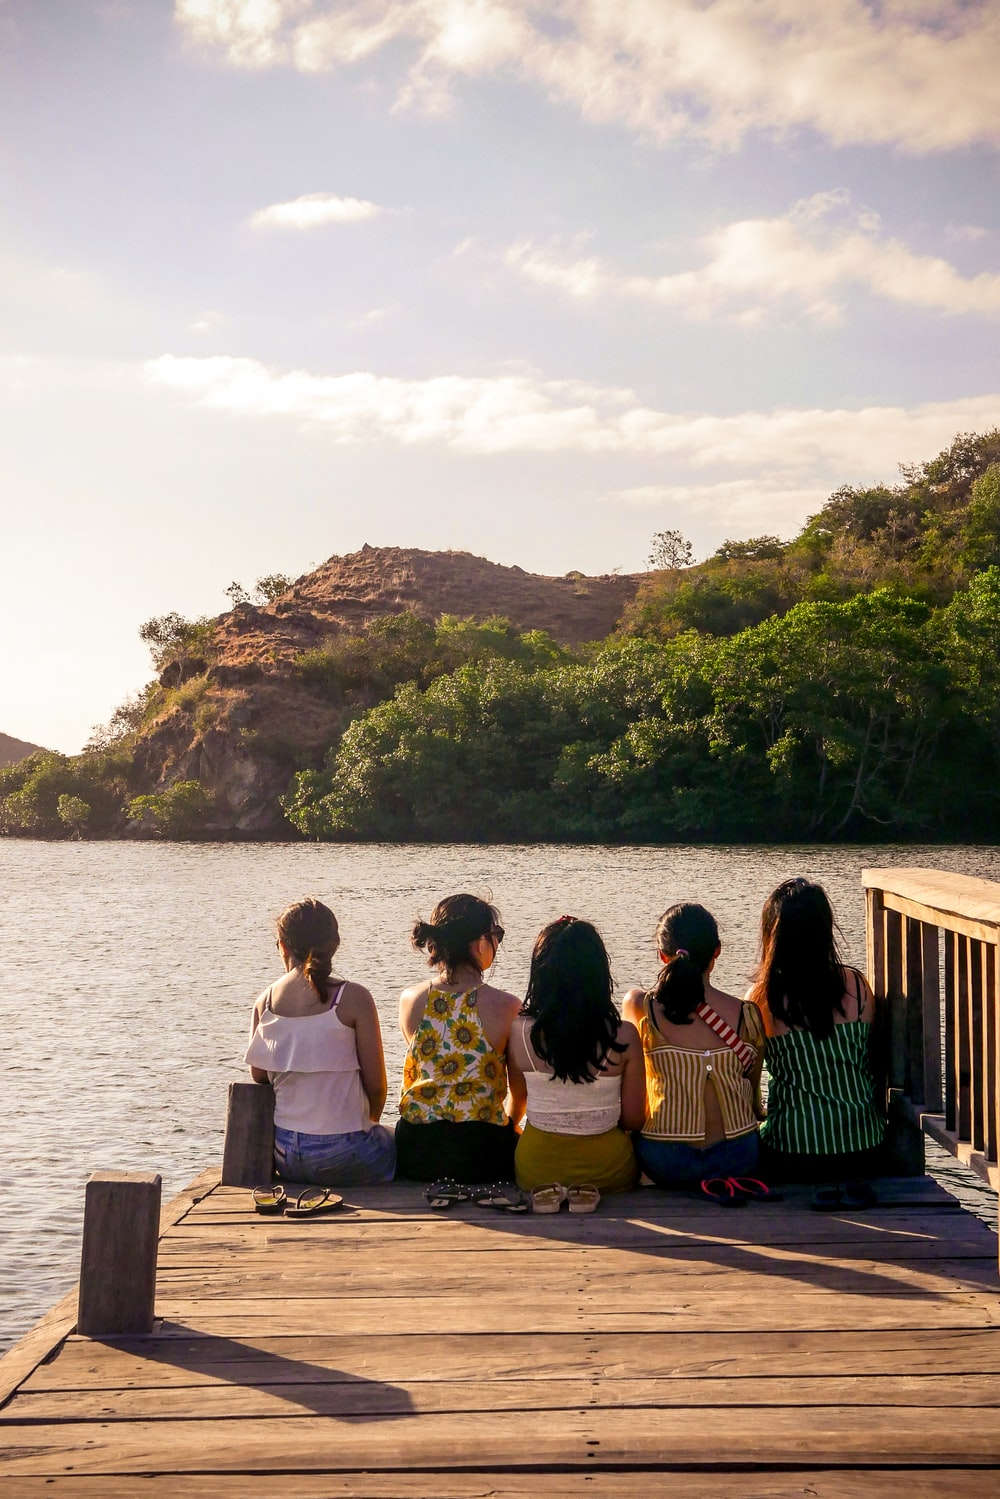 group of people sitting on brown wooden bench near body of water during daytime